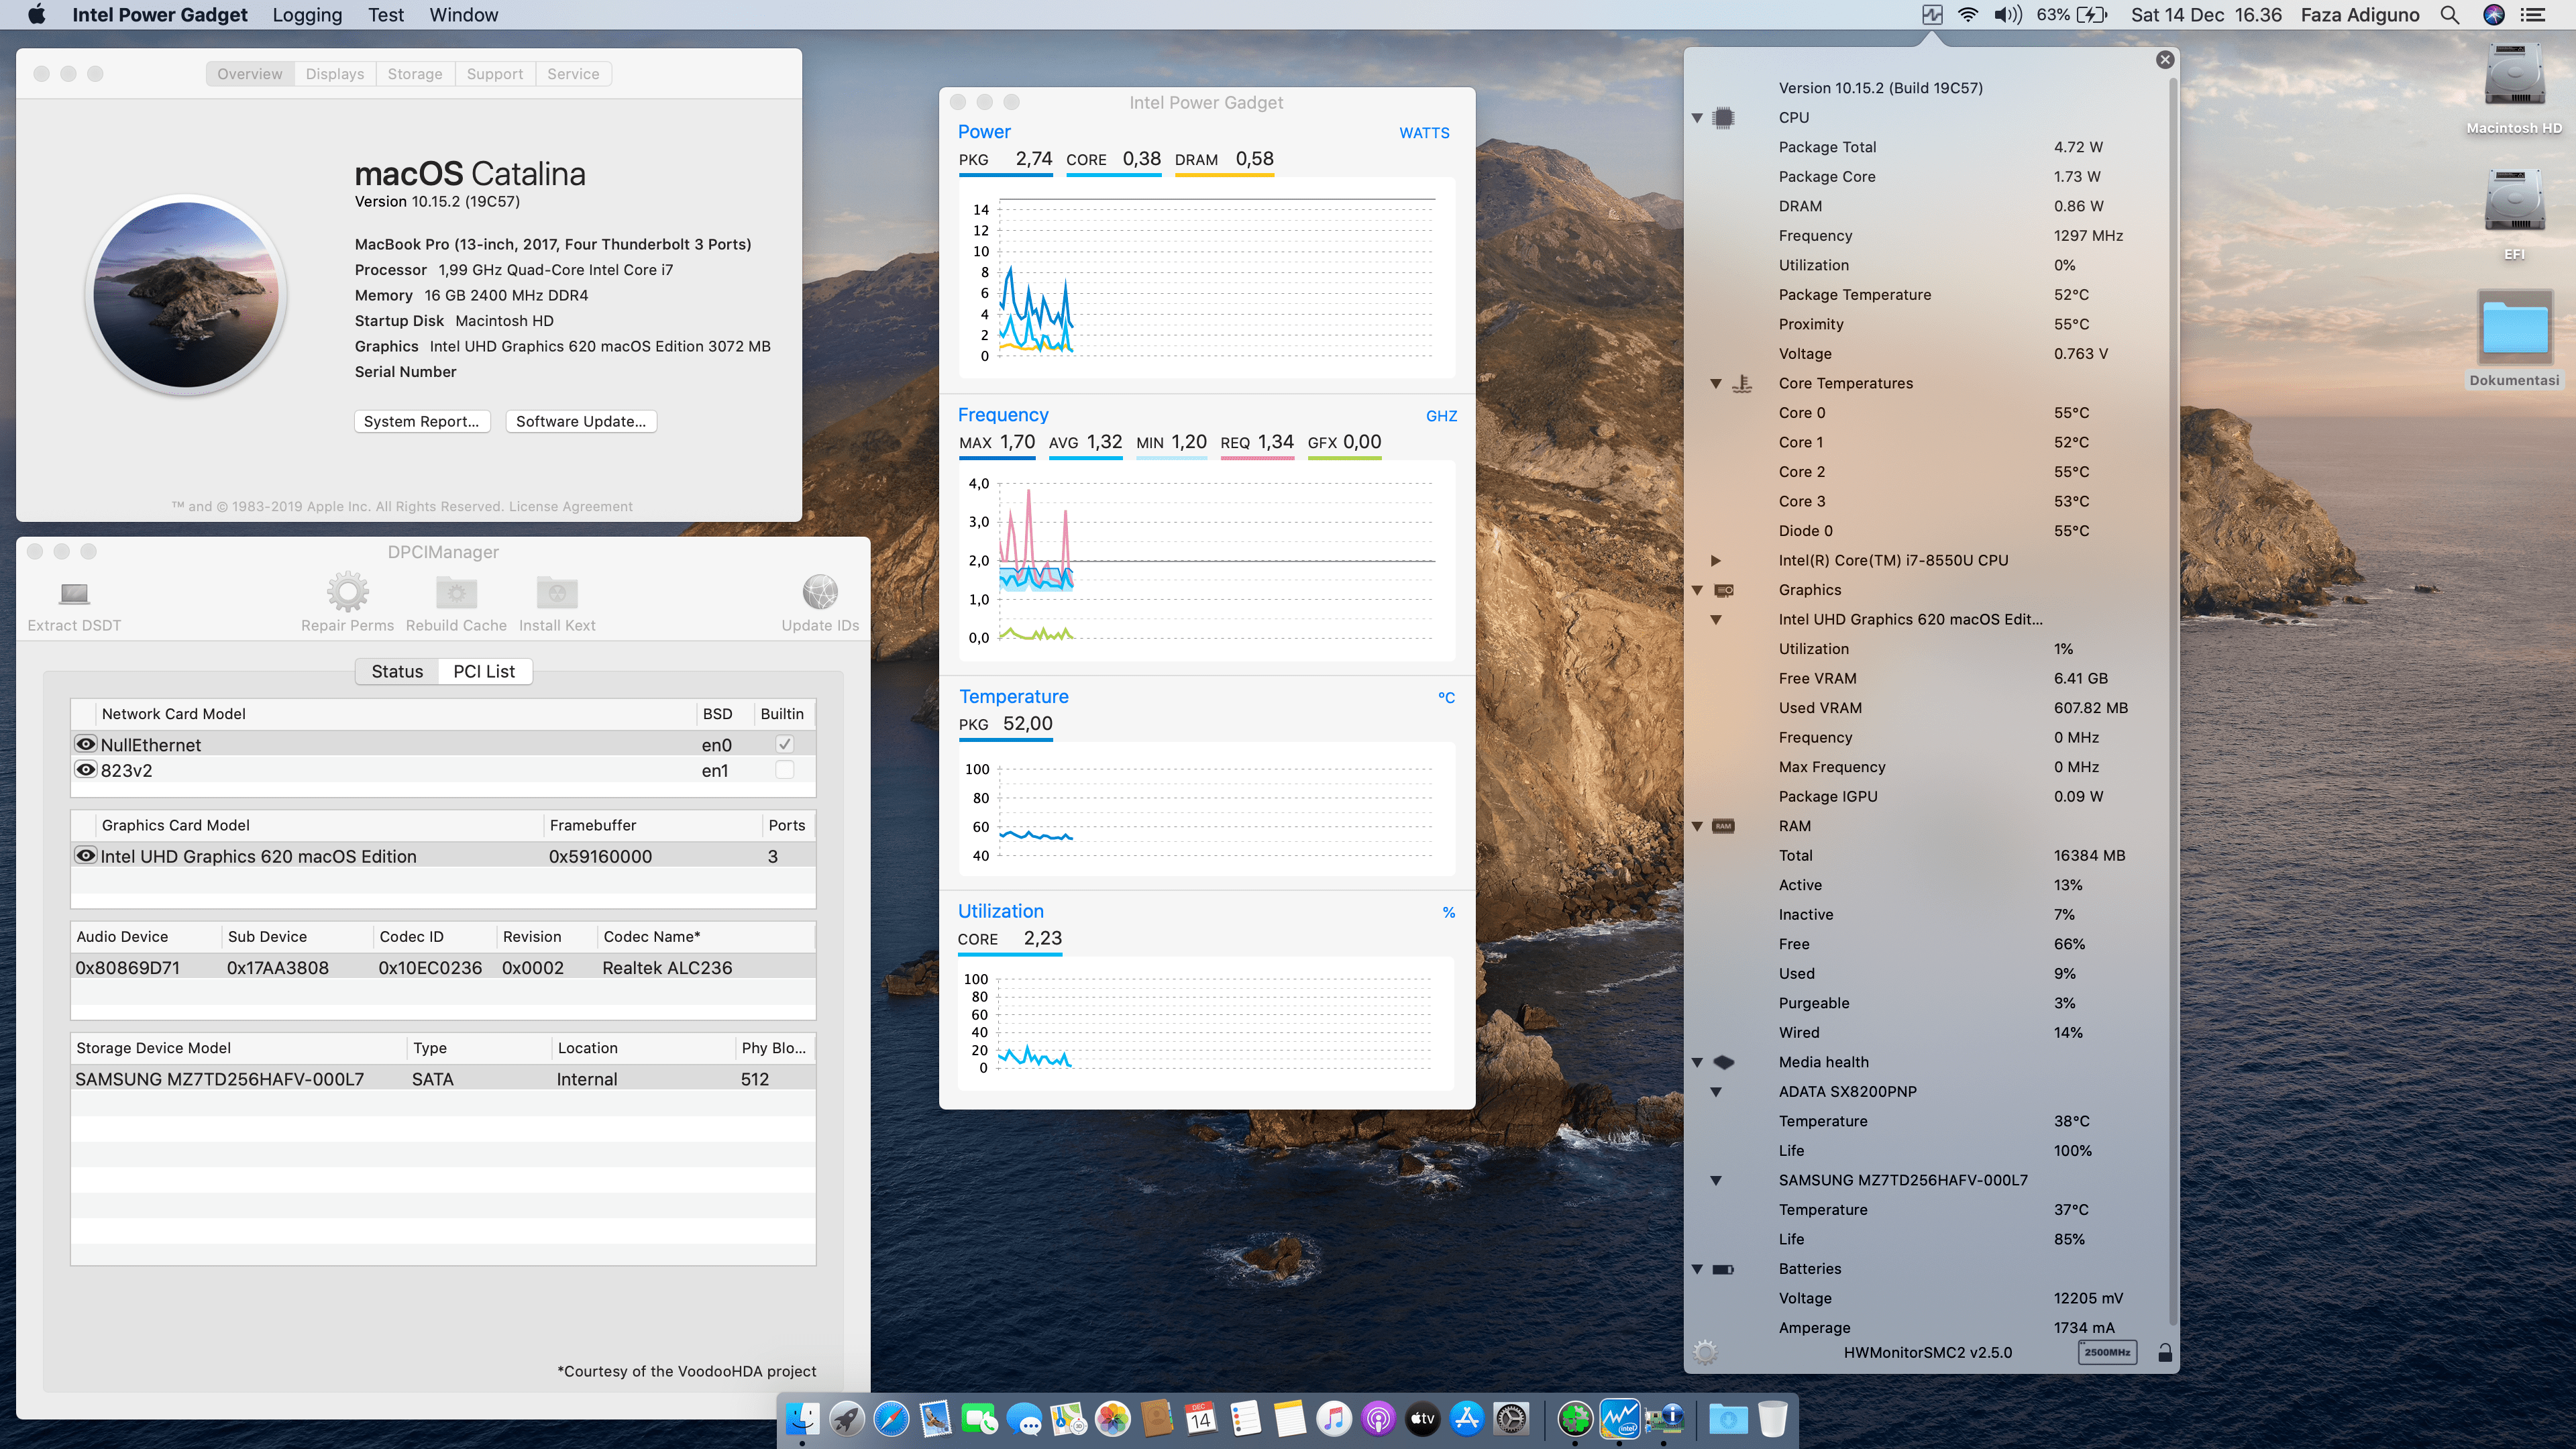 Success Hackintosh macOS Catalina 10.15.2 Build 19C57 at Lenovo Flex 5-15 X360 Touch